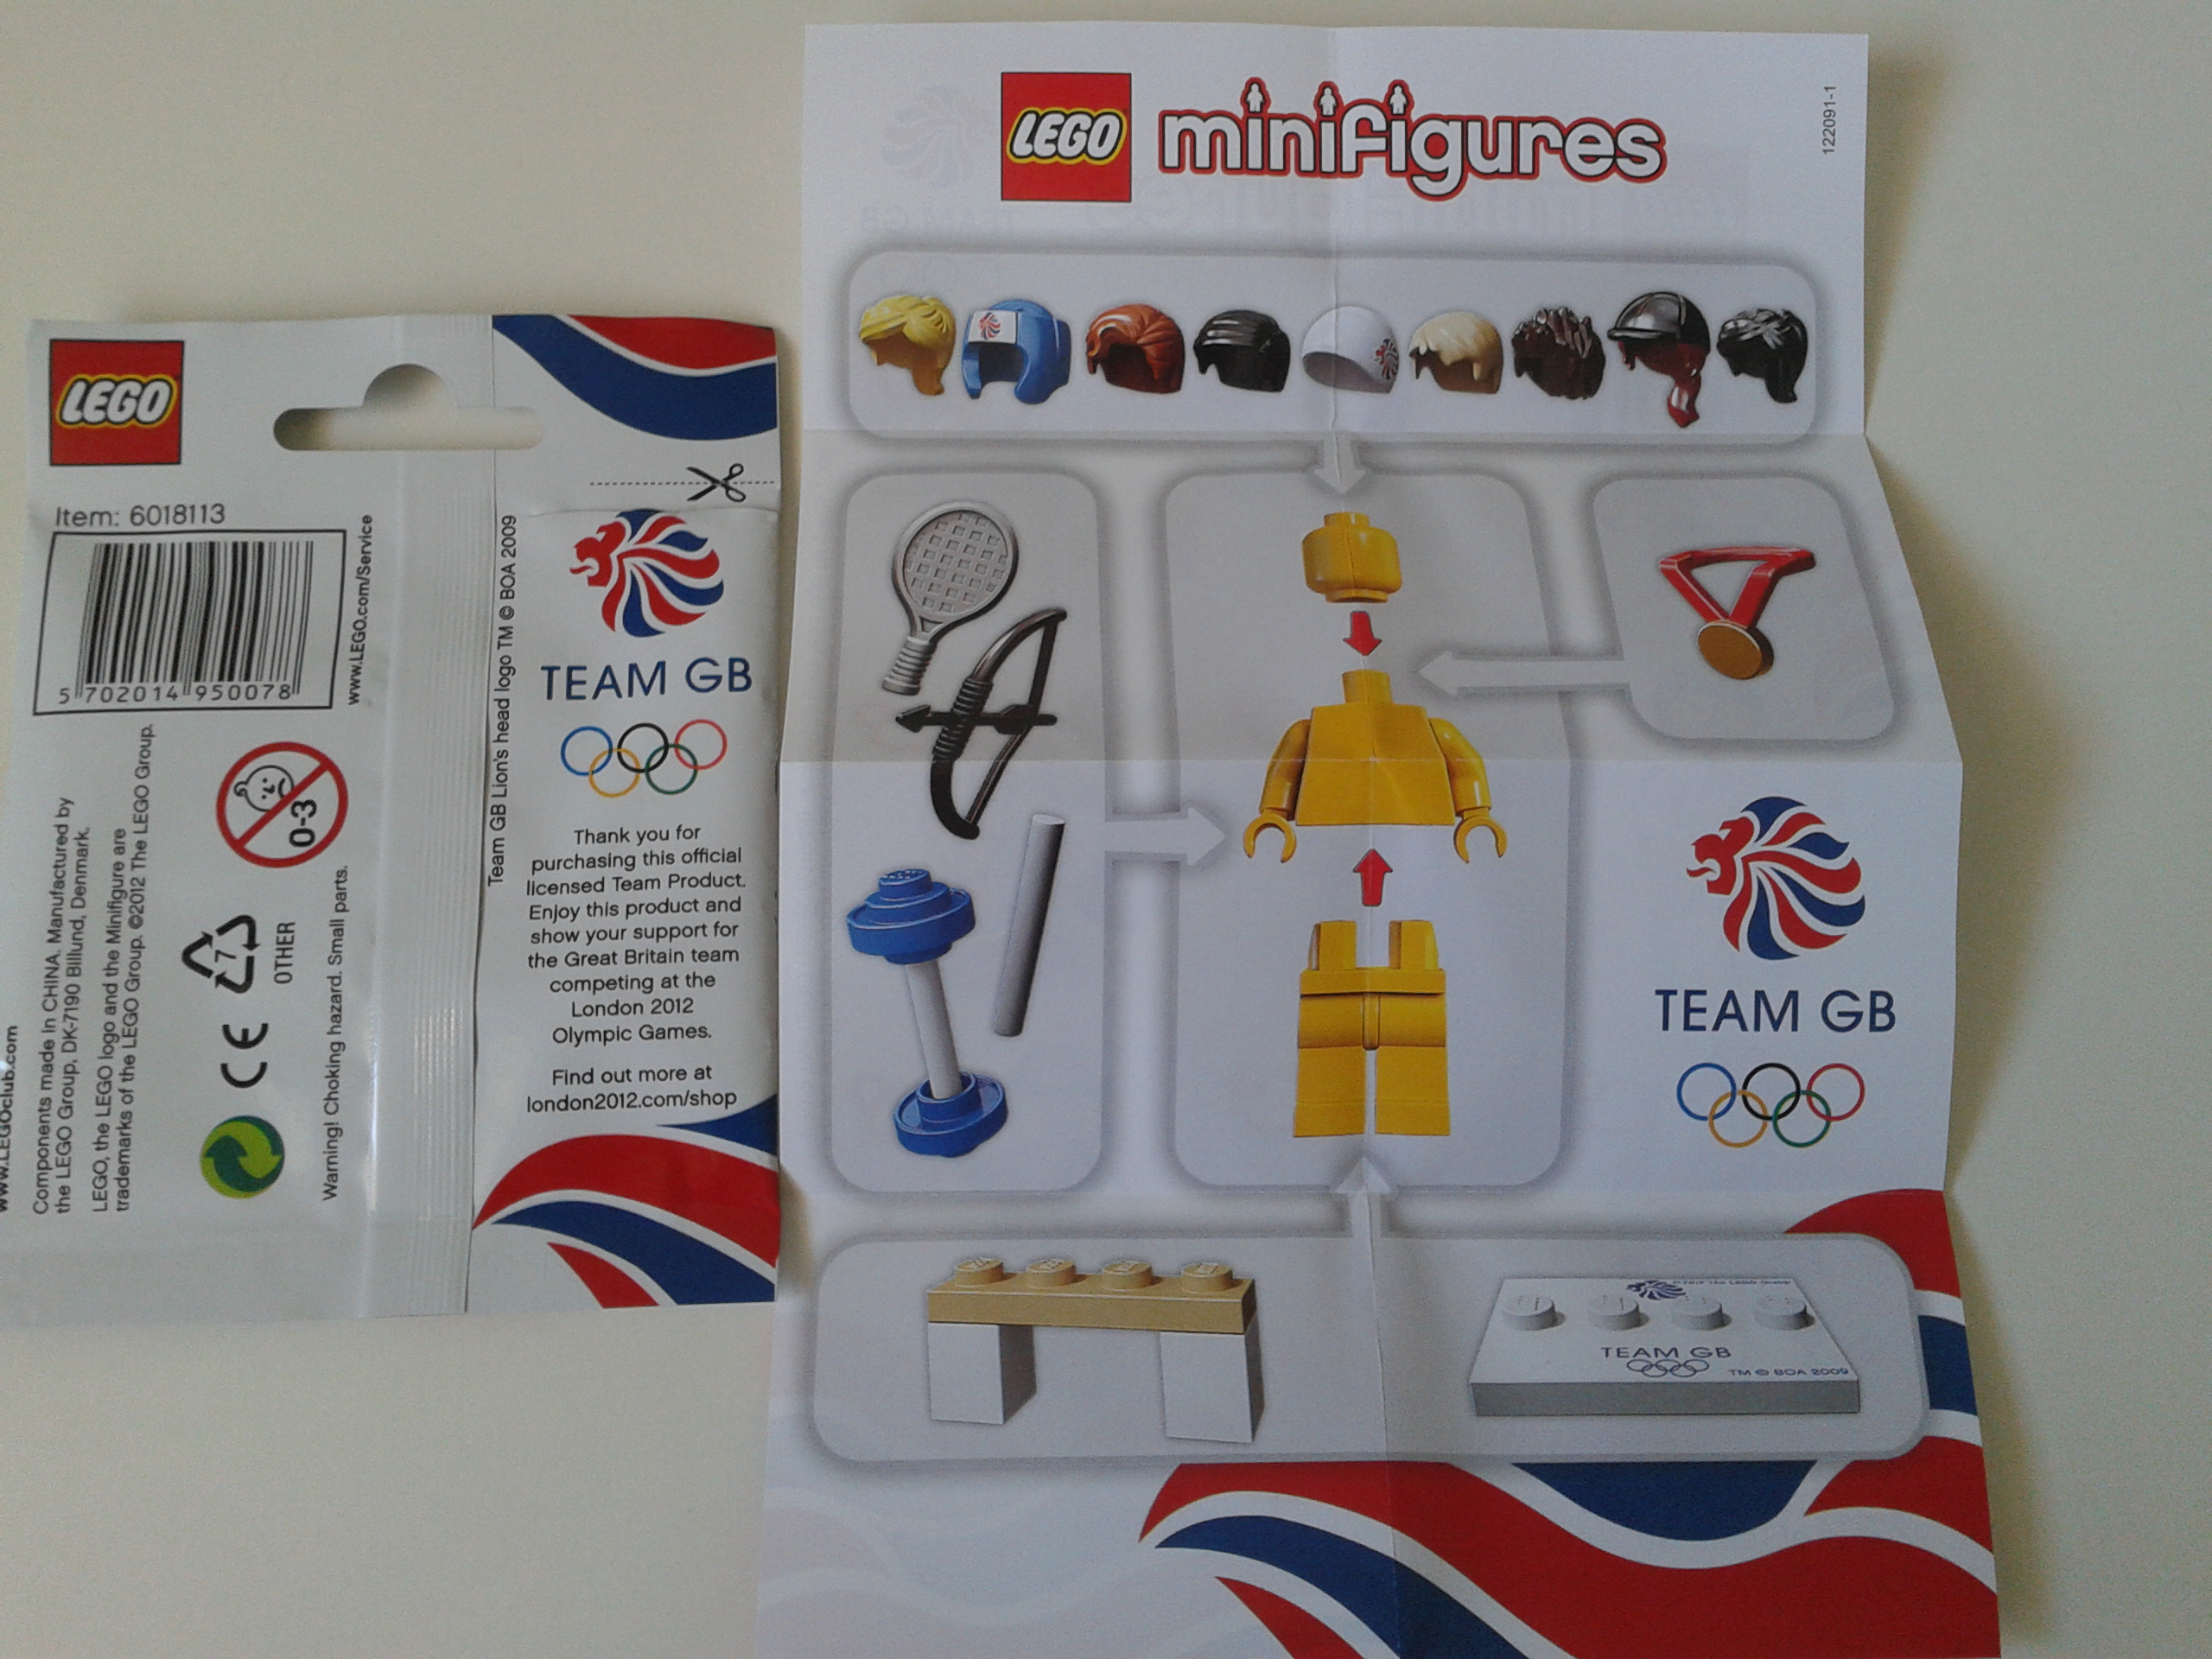 LEGO Minifigure Team GB London 2012 Olympics Wondrous Weightlifter 8909 Complete